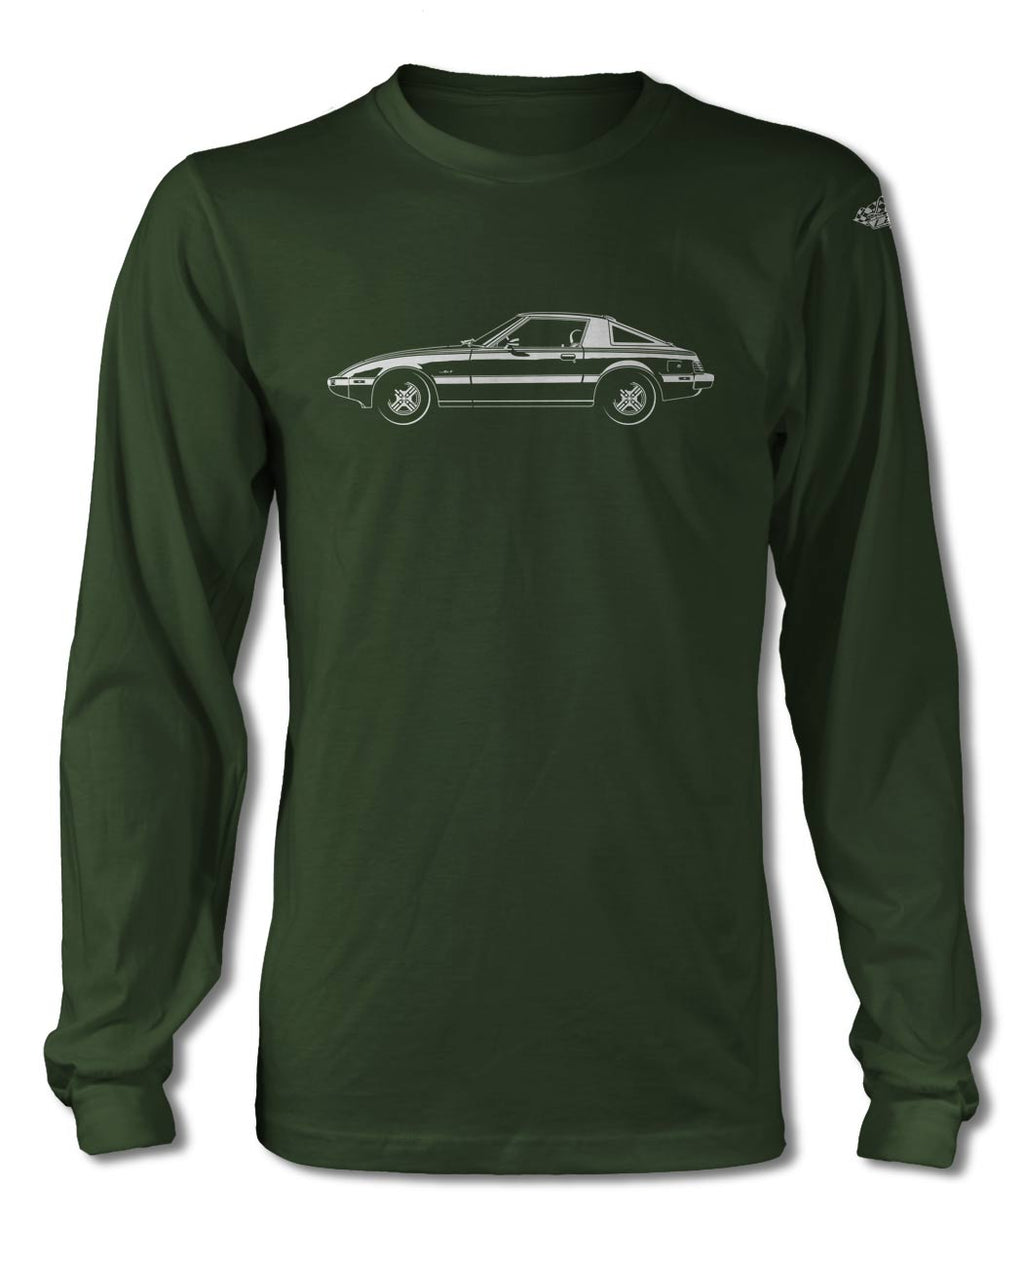 Mazda RX-7 S2 First generation 1978 - 1985 T-Shirt - Long Sleeves - Side View